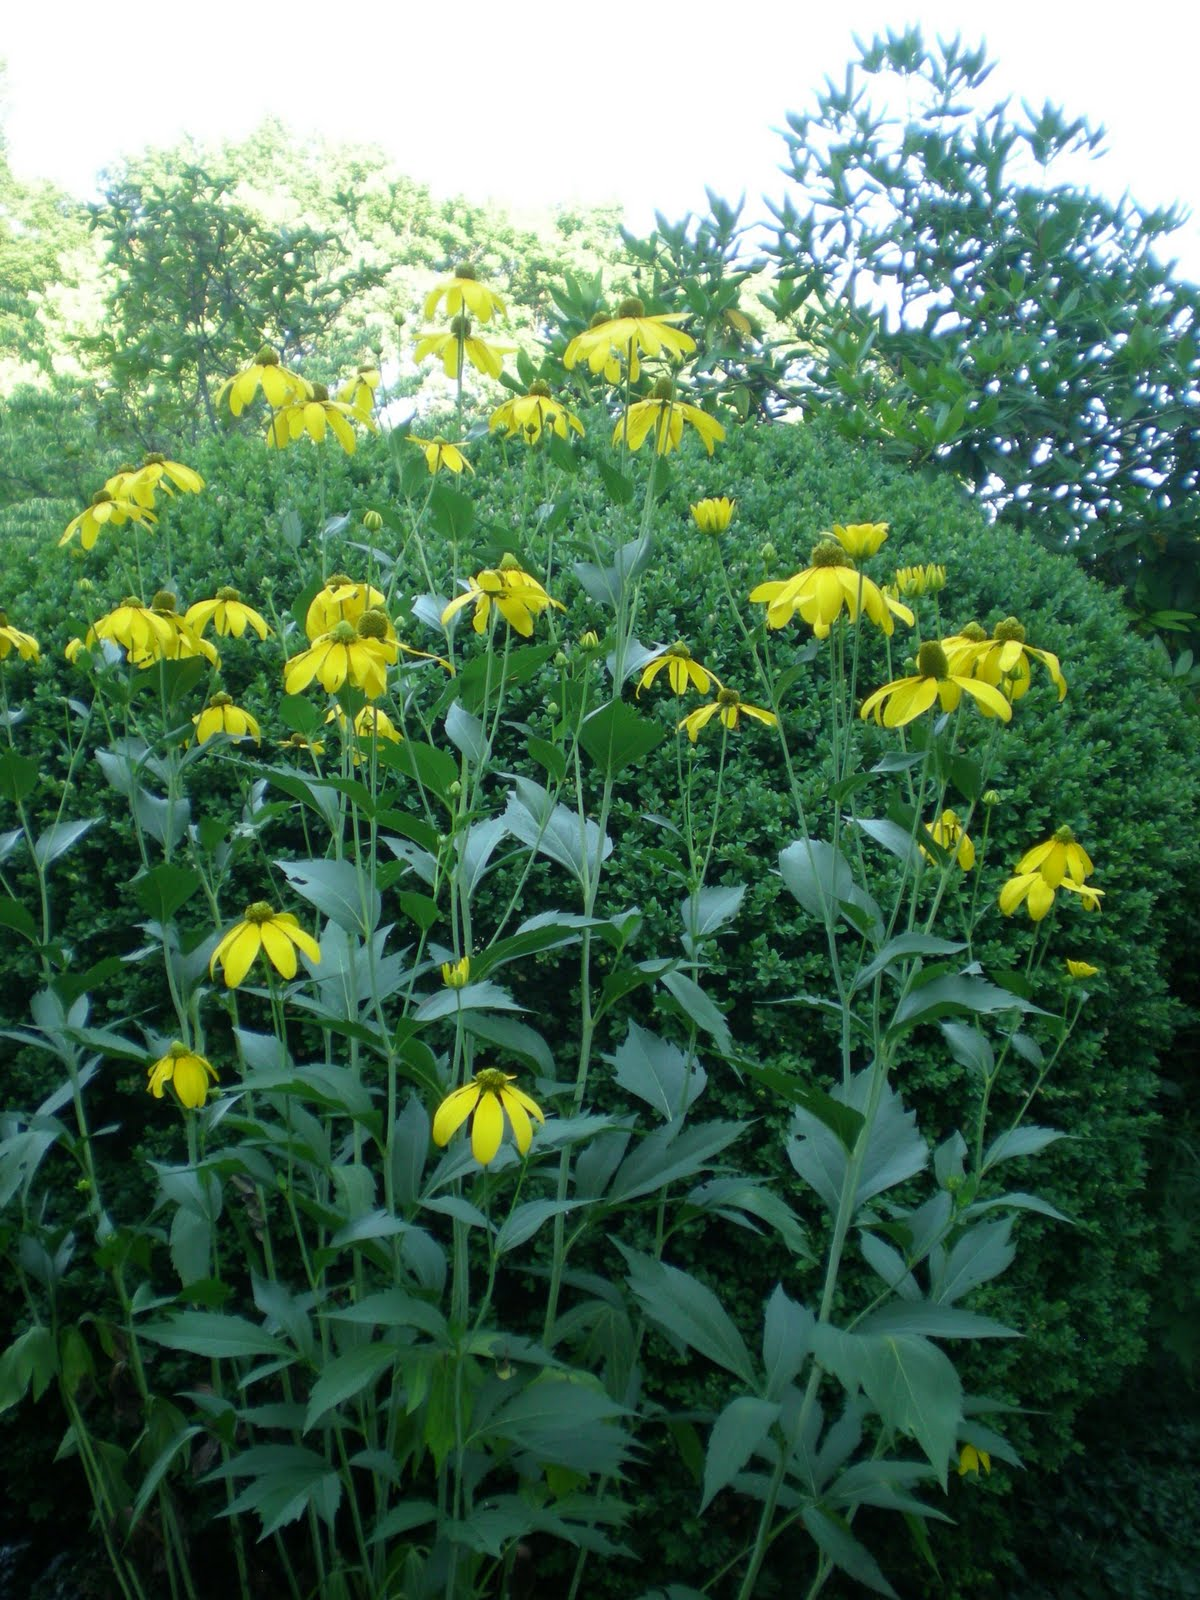 Jarvis house late summer daisies then there is this plant which is very tall around seven feet another perennial and has yellow daisy like blossoms with a green center izmirmasajfo